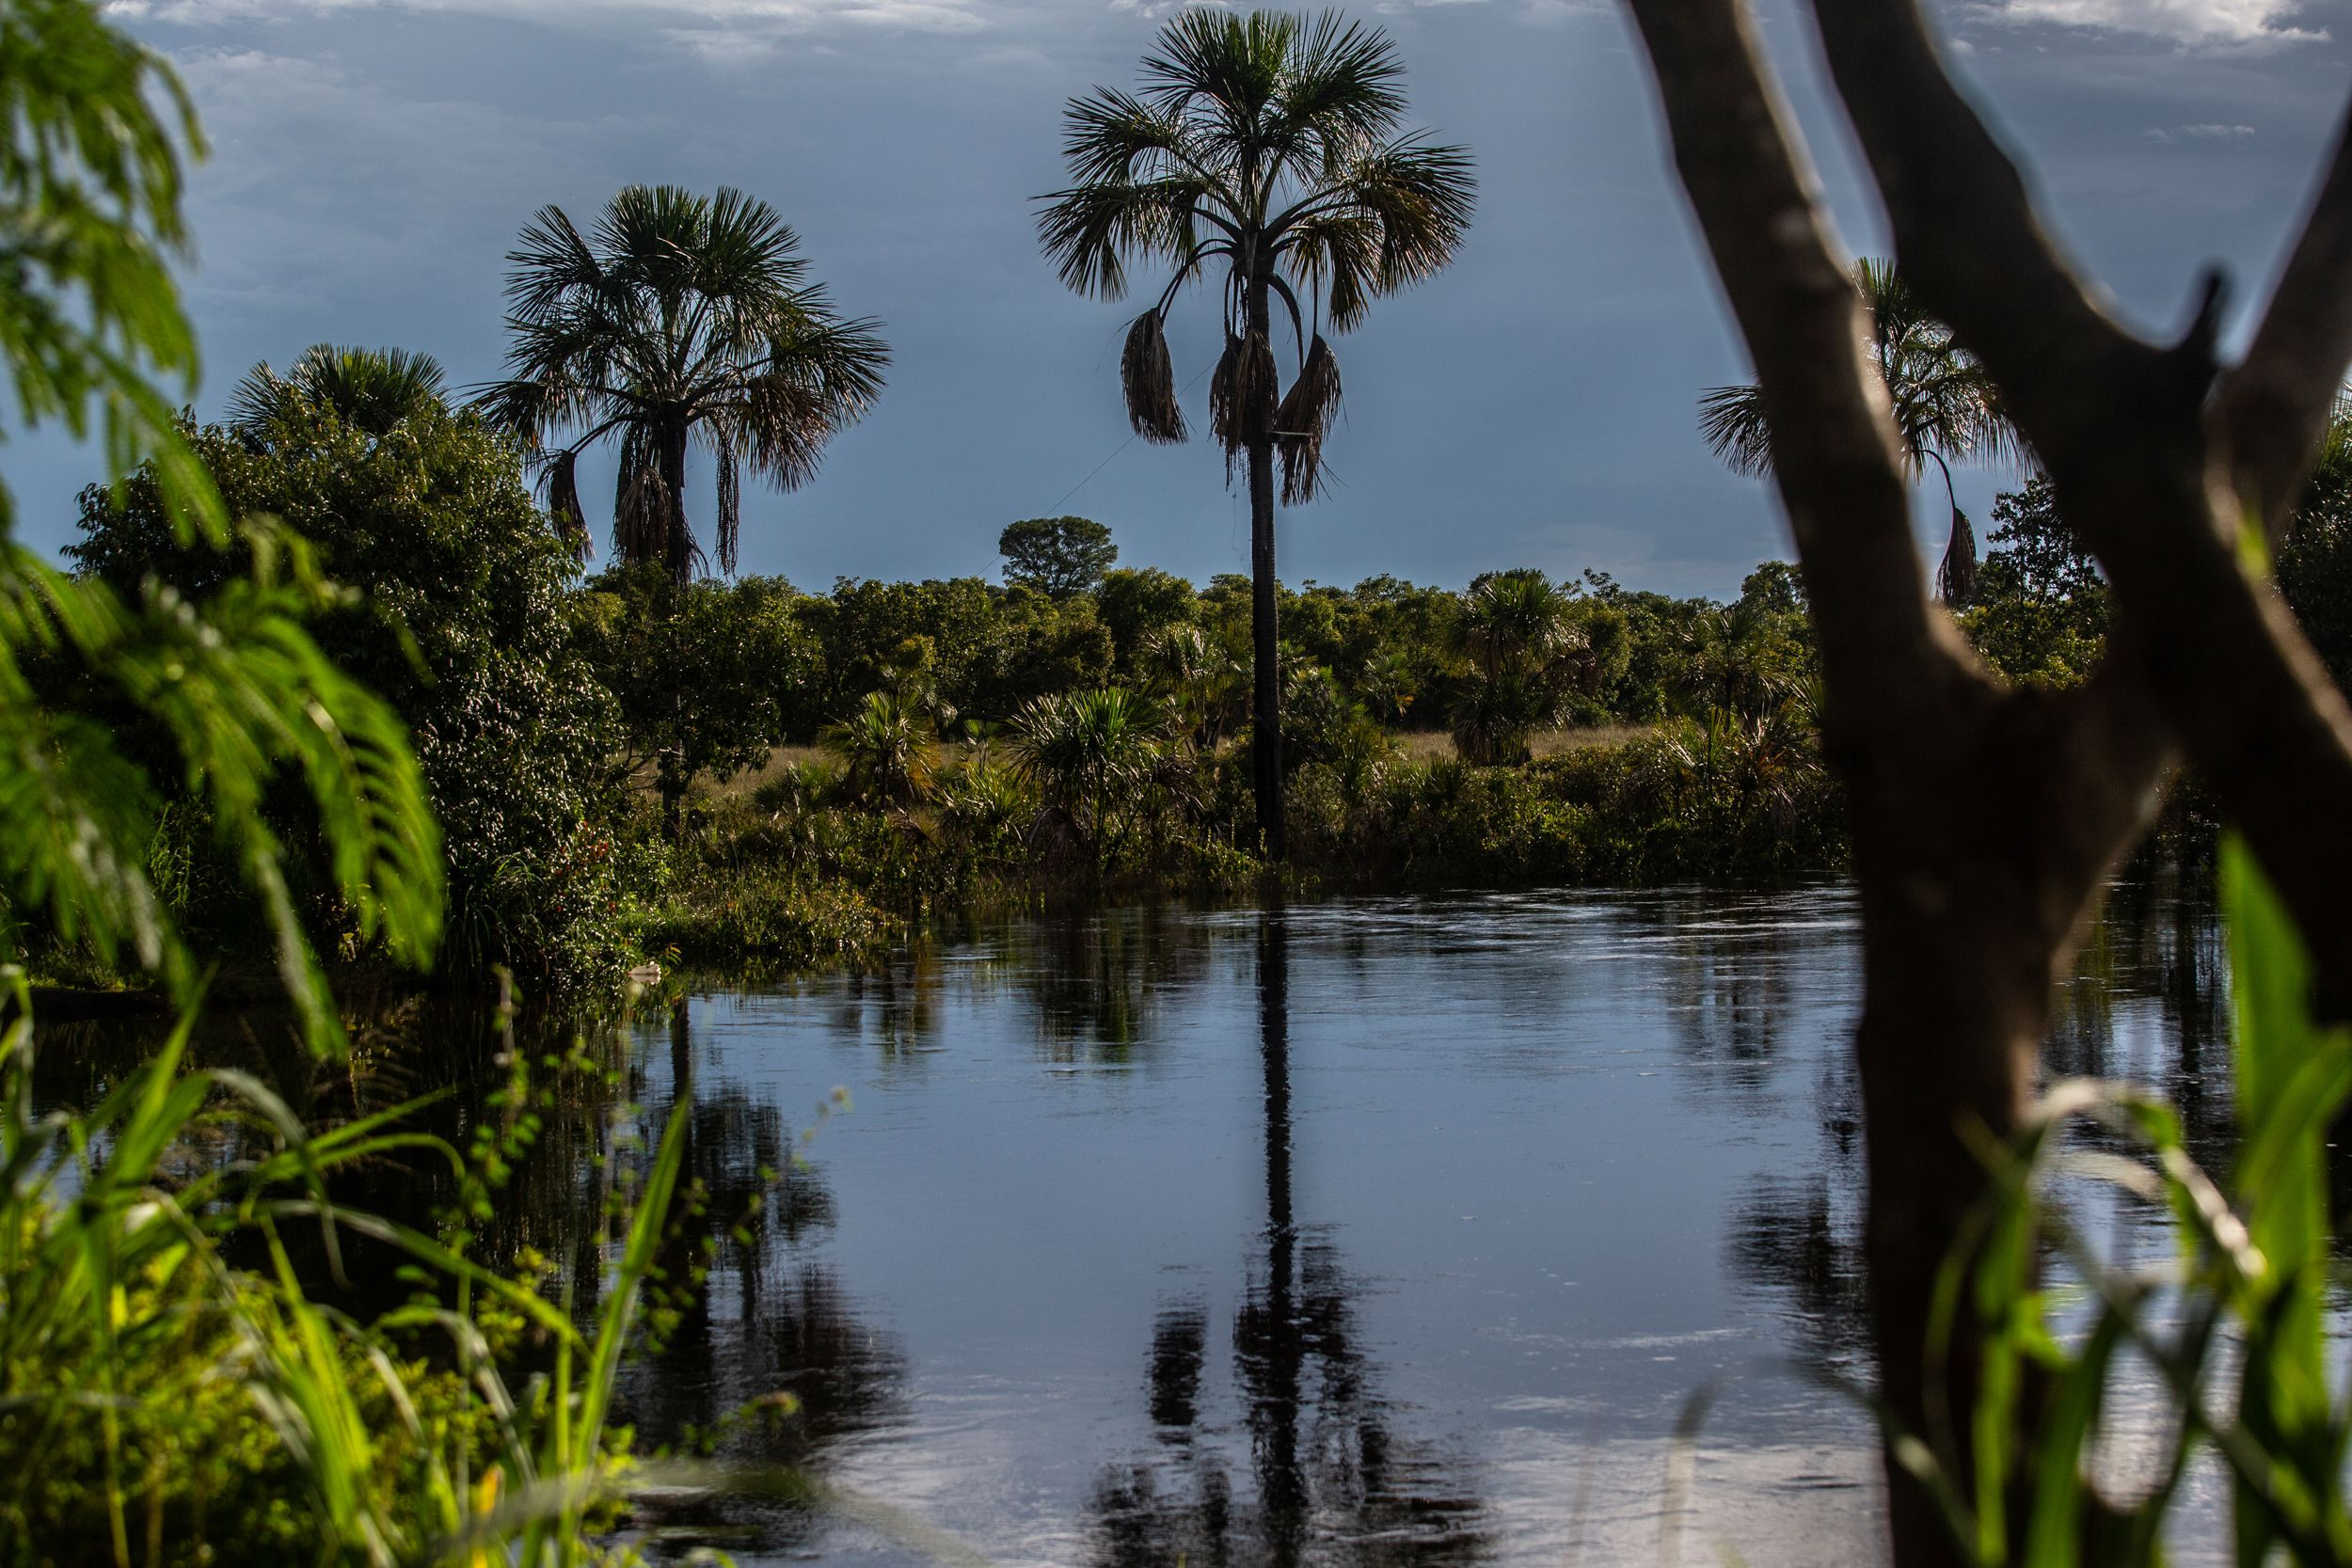 A typical swampy area in the Cerrado, fed by rainwater and the Urucuia aquifer in Bahia state.